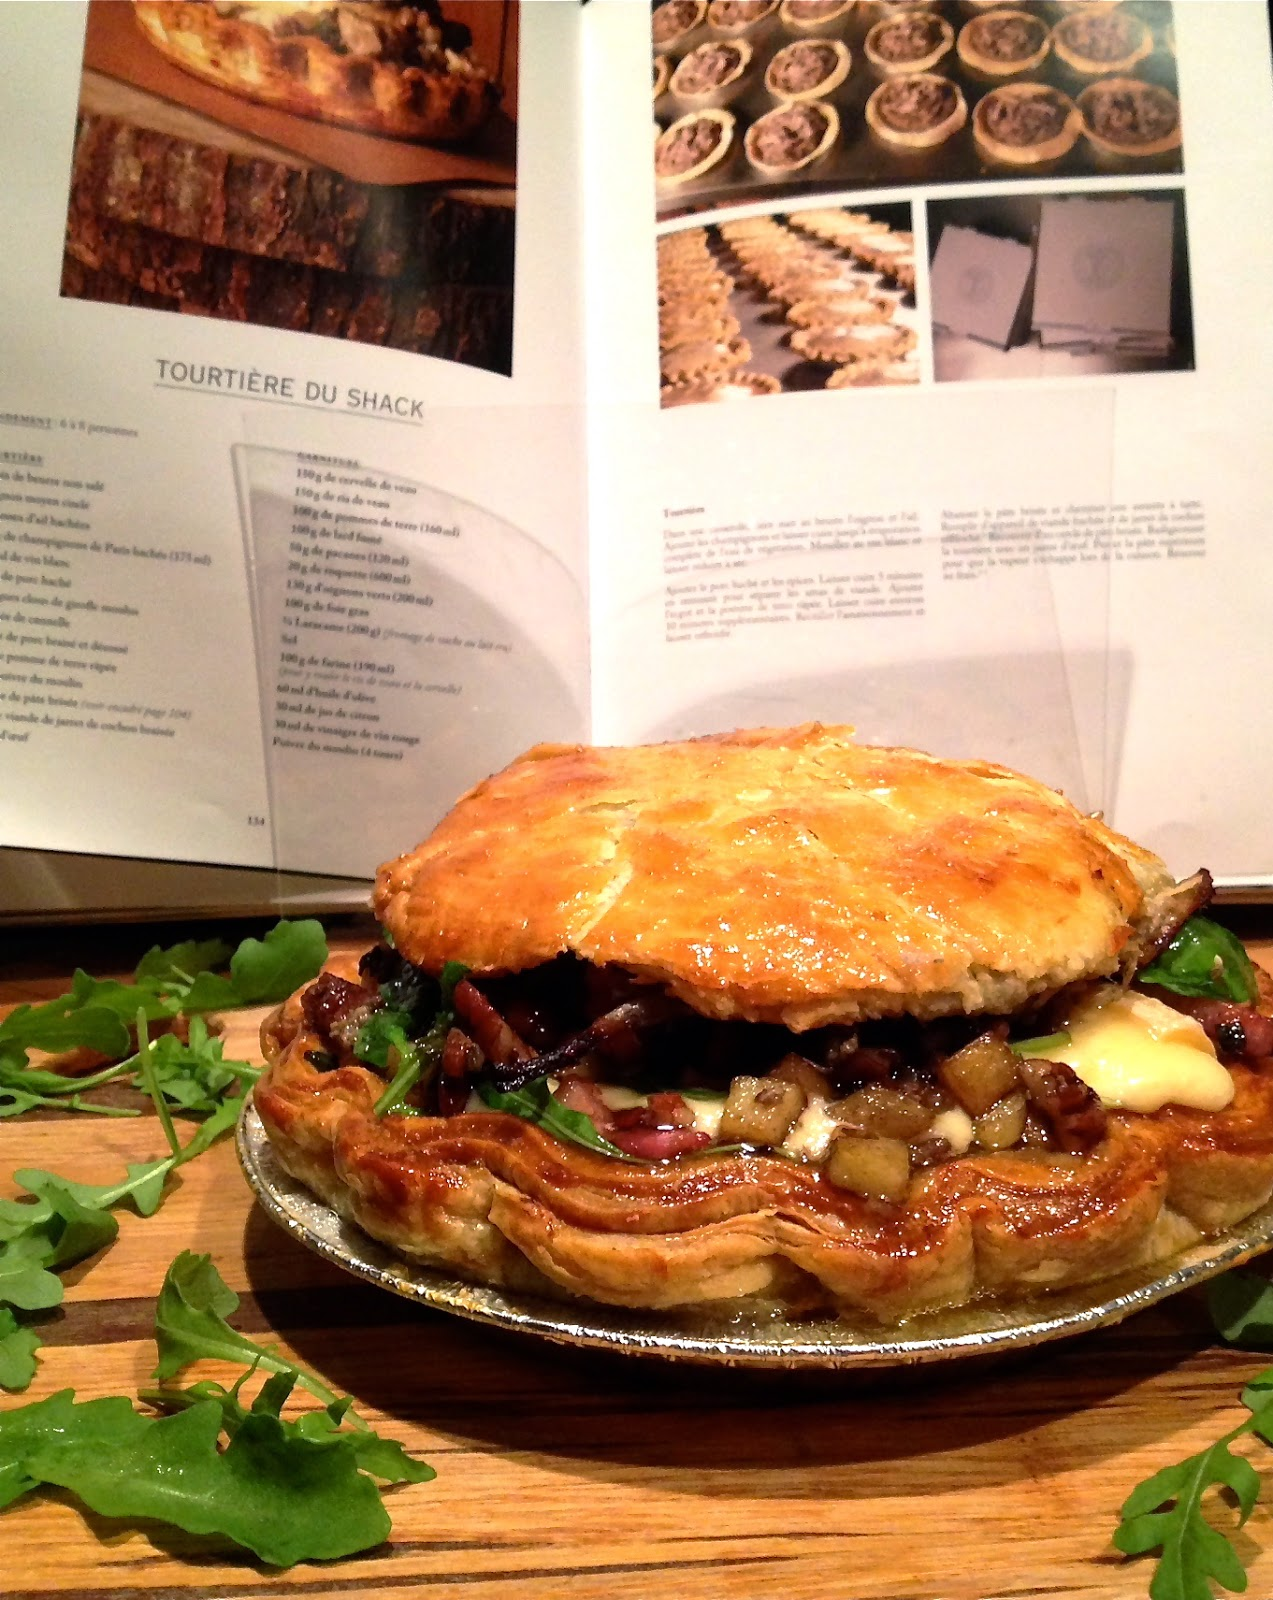 ... recipes tourtiere du shack the fake shack or the shack burger